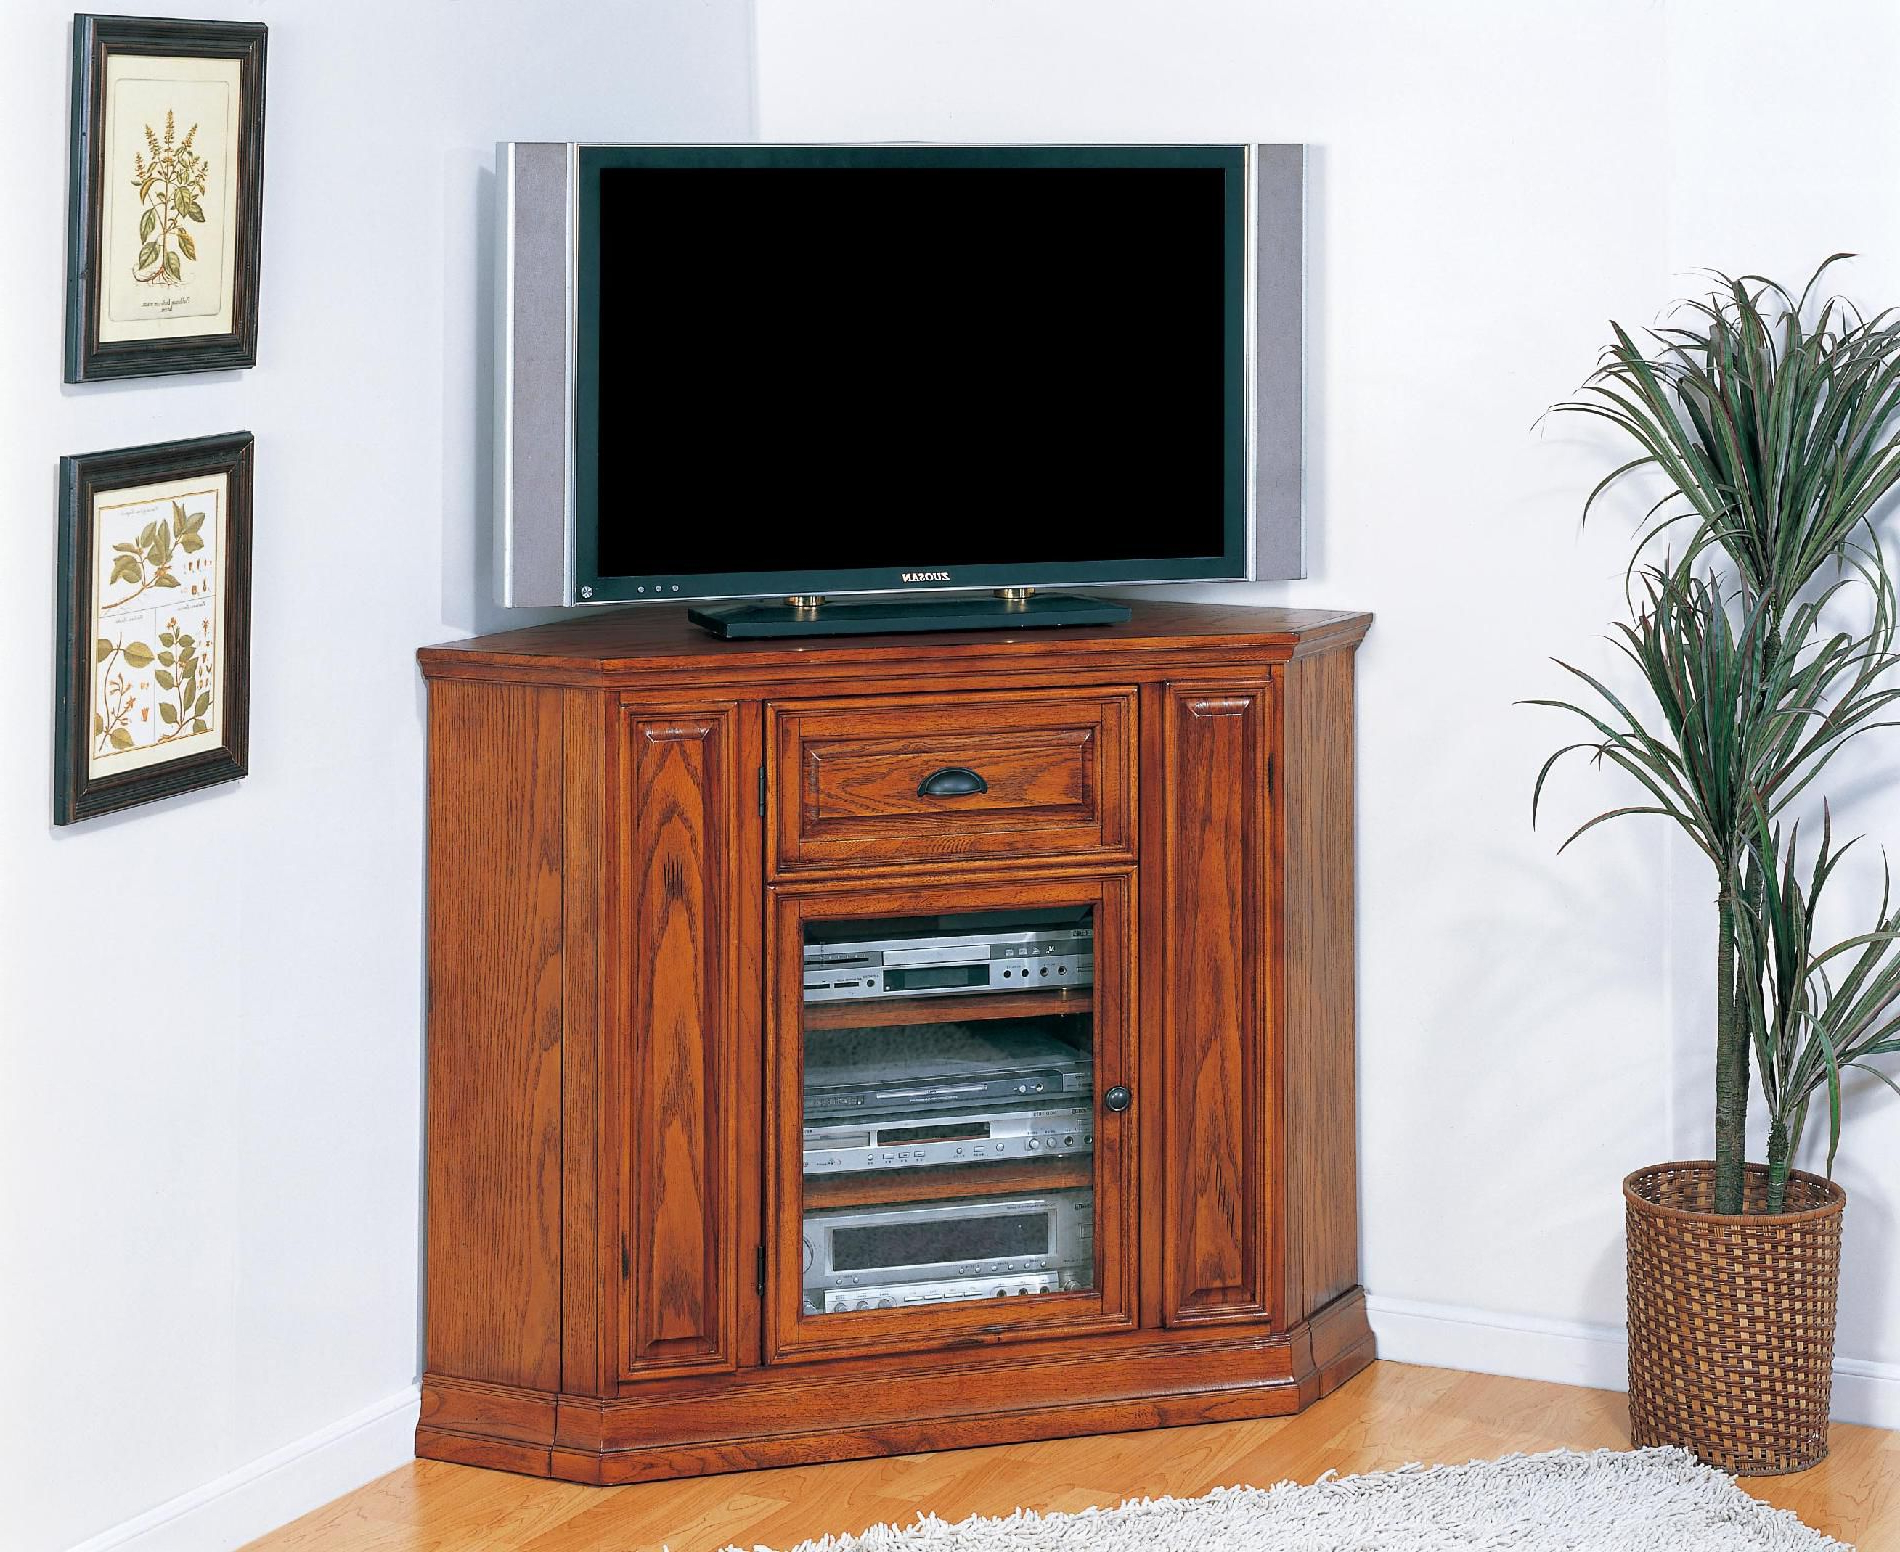 Well Liked Small Oak Corner Tv Stands Pertaining To Wood Corner Tv Stand With Mount 65 Inch Stands Conns Mcallen Flat (View 19 of 20)